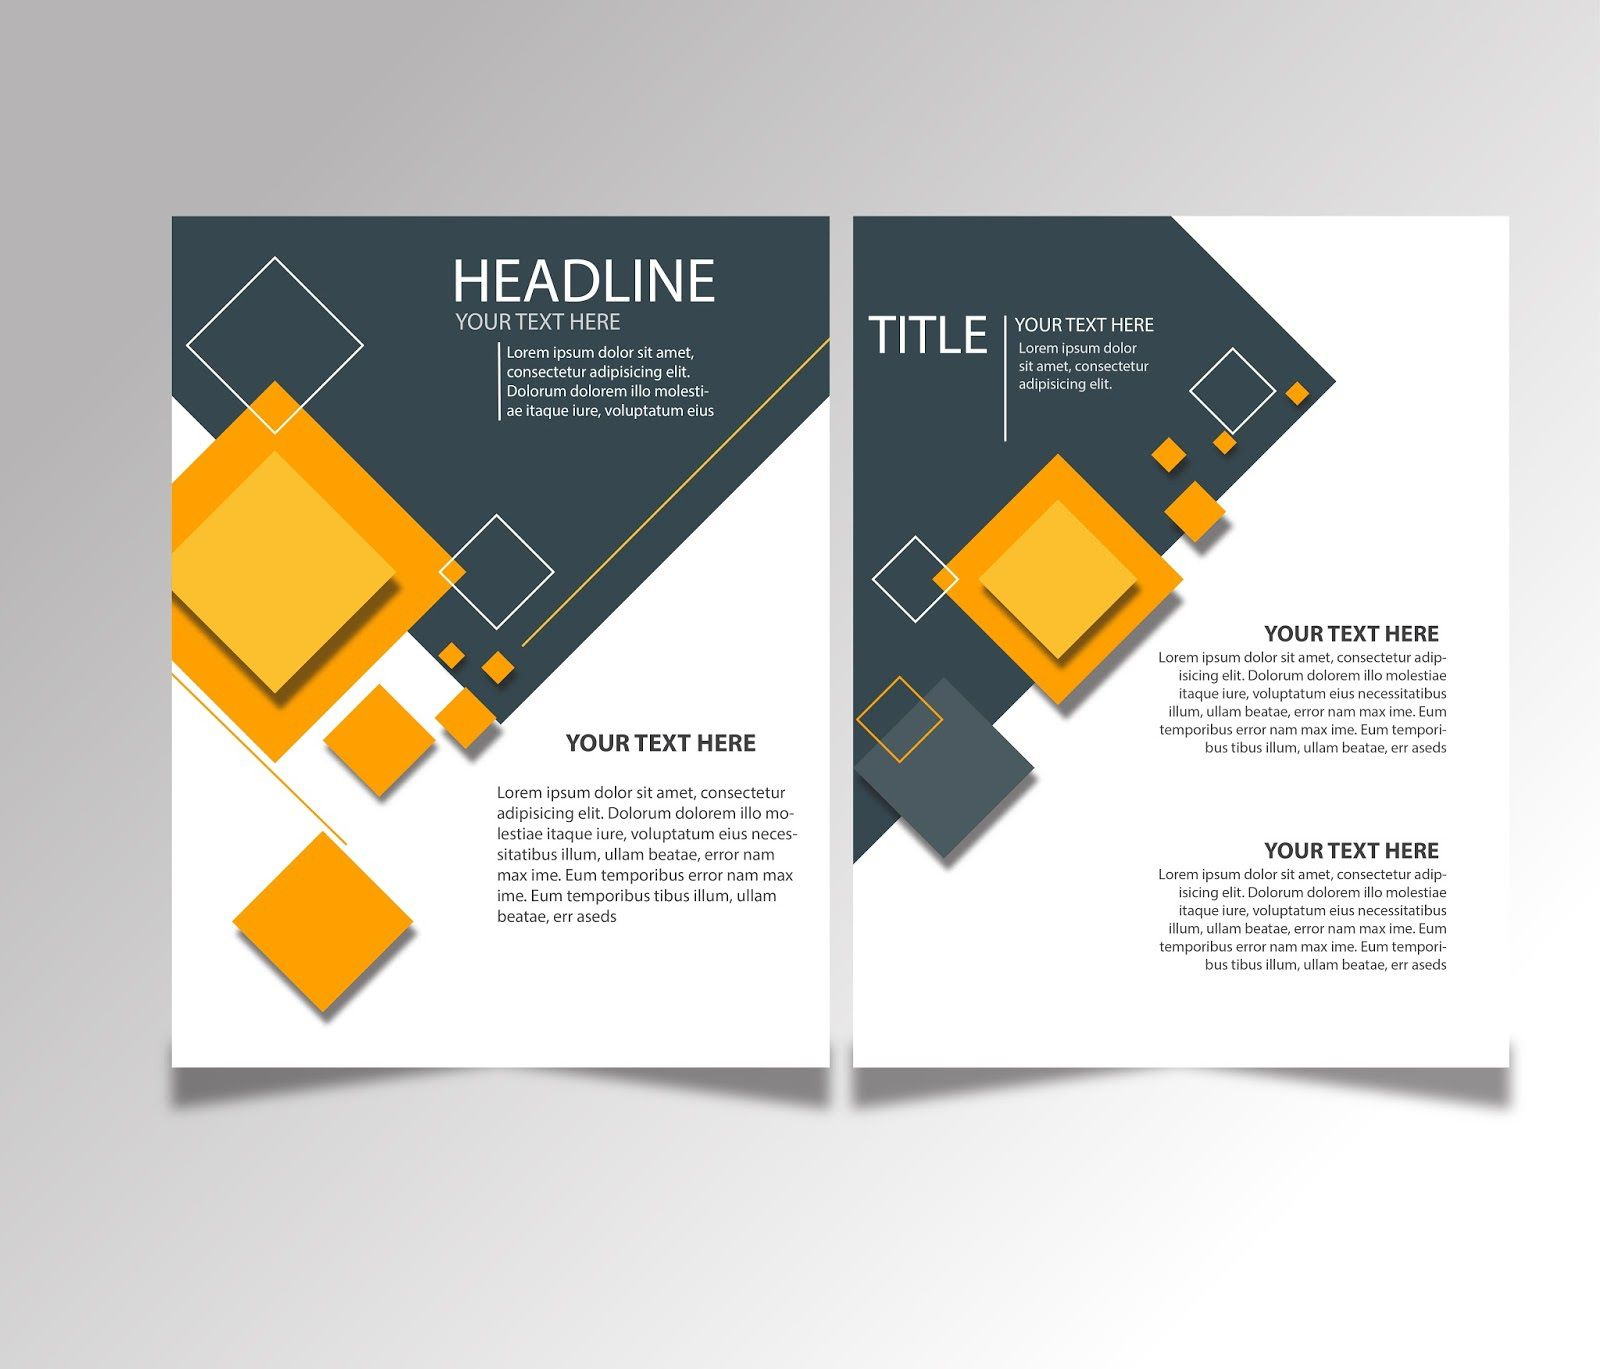 009 Magnificent Photoshop Brochure Design Template Free Download Highest Clarity Full